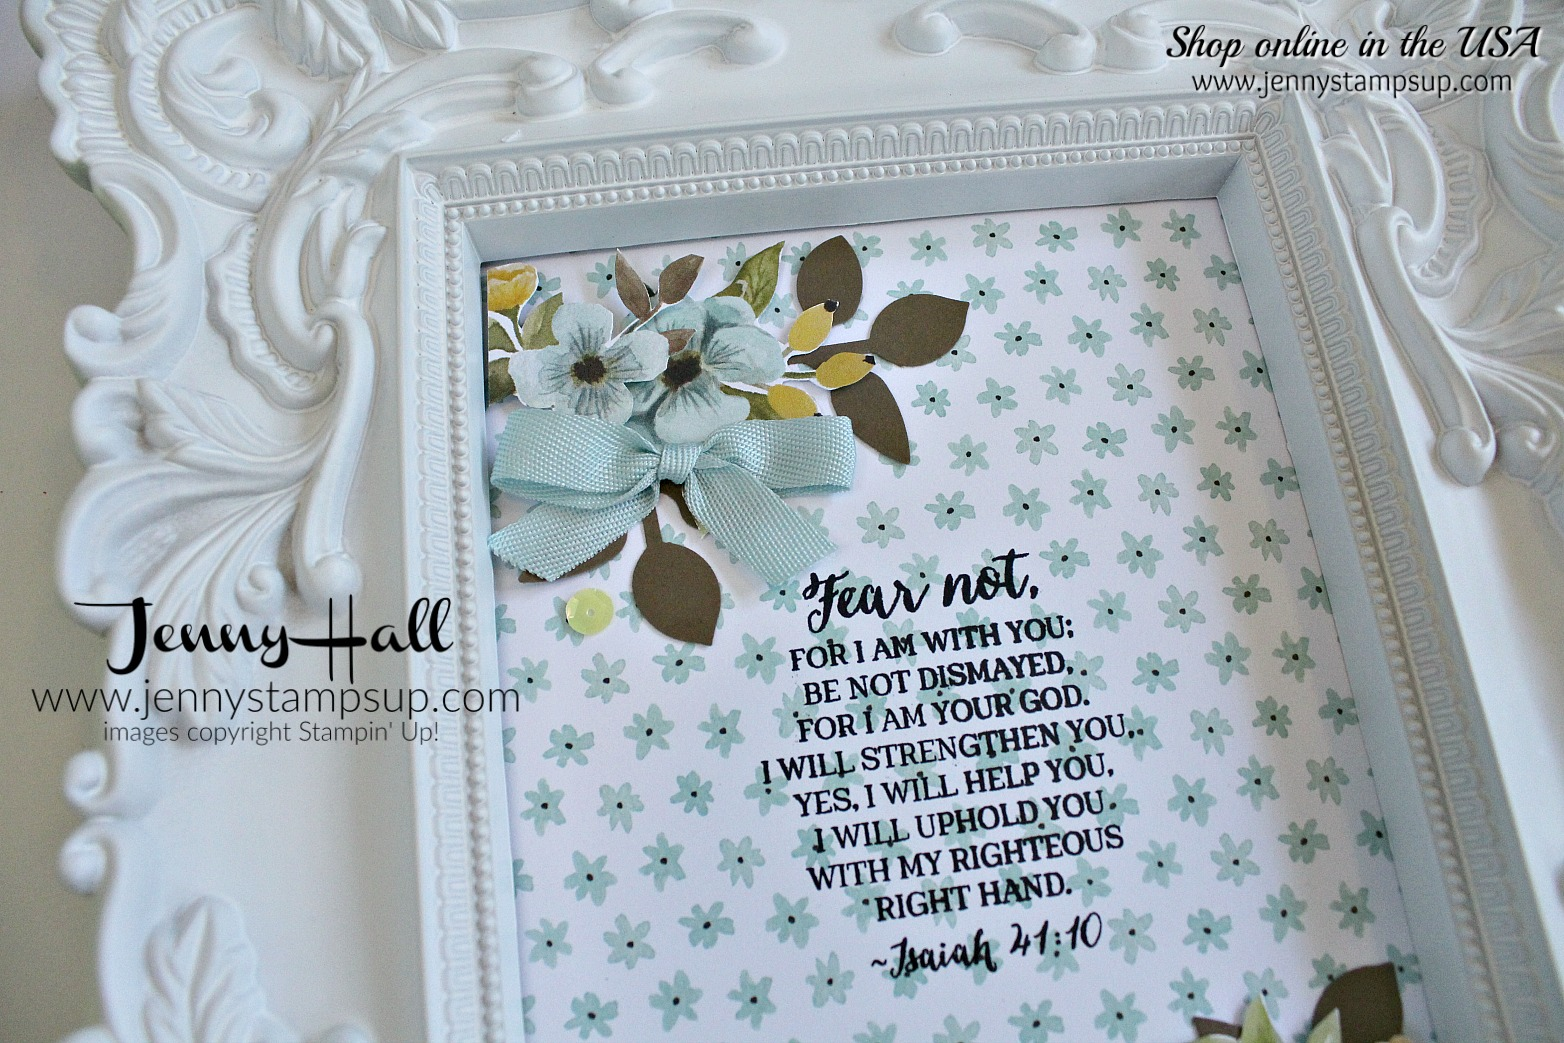 April Stampin Friends blog hop card created by Jenny Hall at www.jennyhalldesign.com for #cardmaing #homedecor #decoratedframe #rosewonder #wholelotoflovely #bibleverse #stamping #stampinup #jennyhall #jennystampsup #jennyhalldesign #crafts #lifestyle